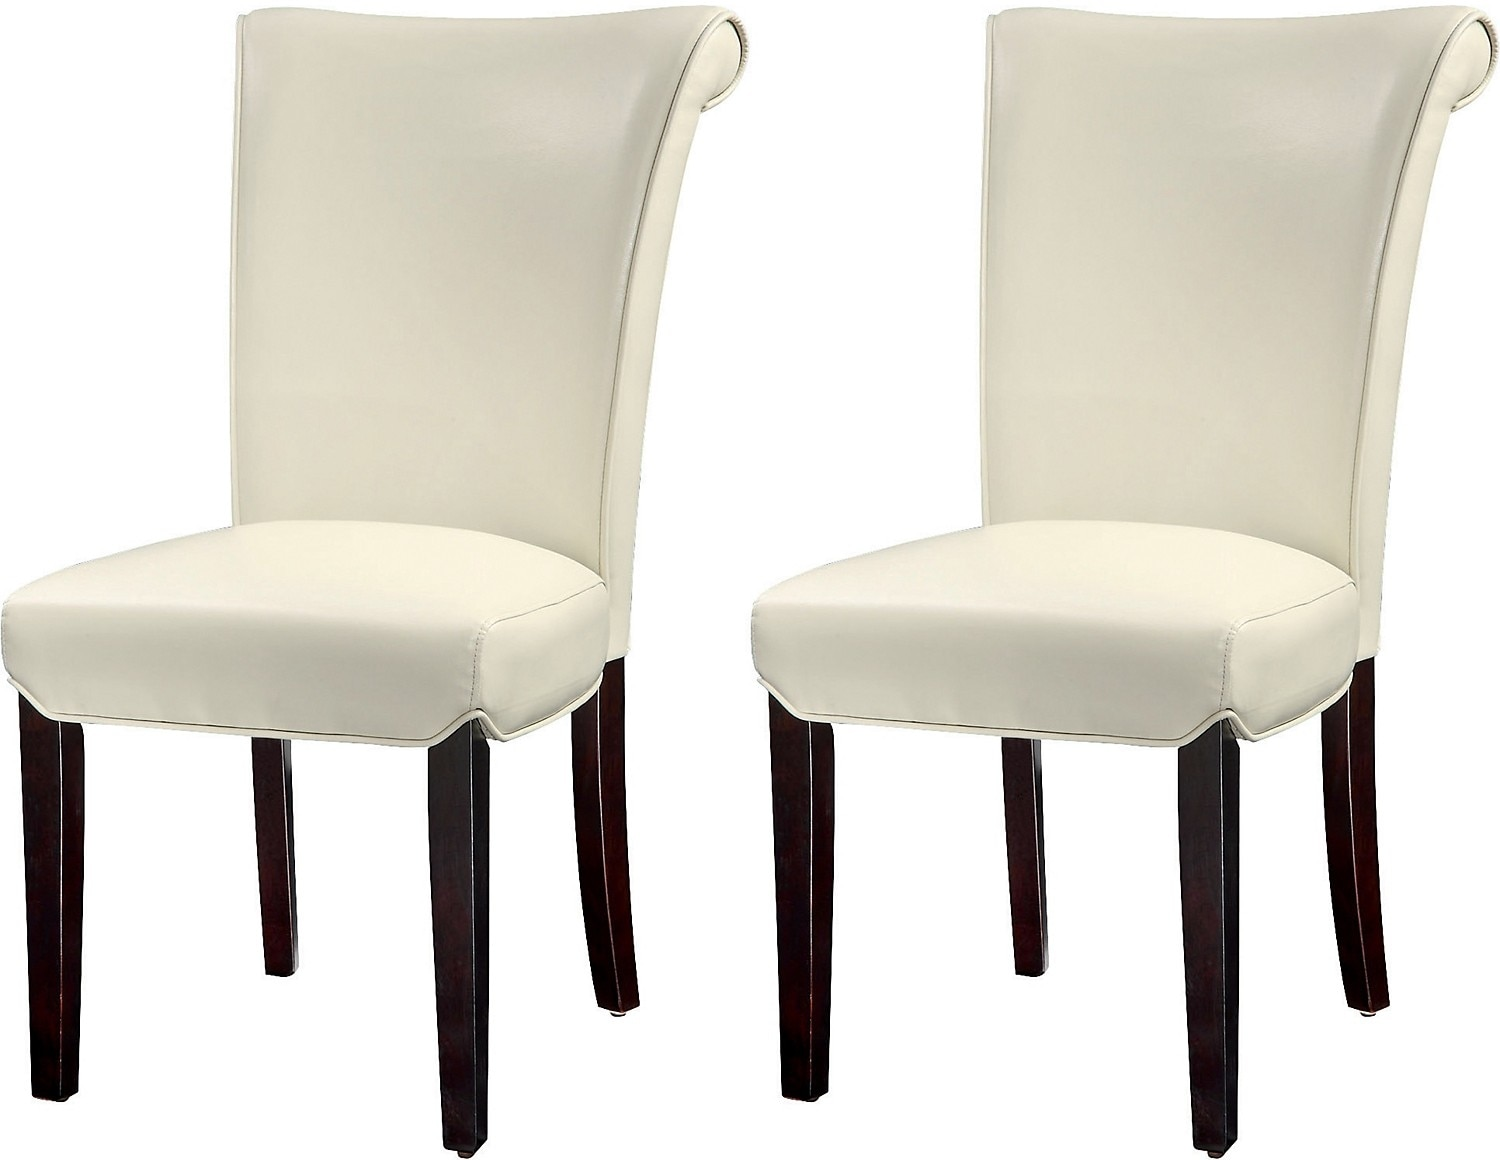 Brogan 2-Piece Dining Chair Package - Ivory